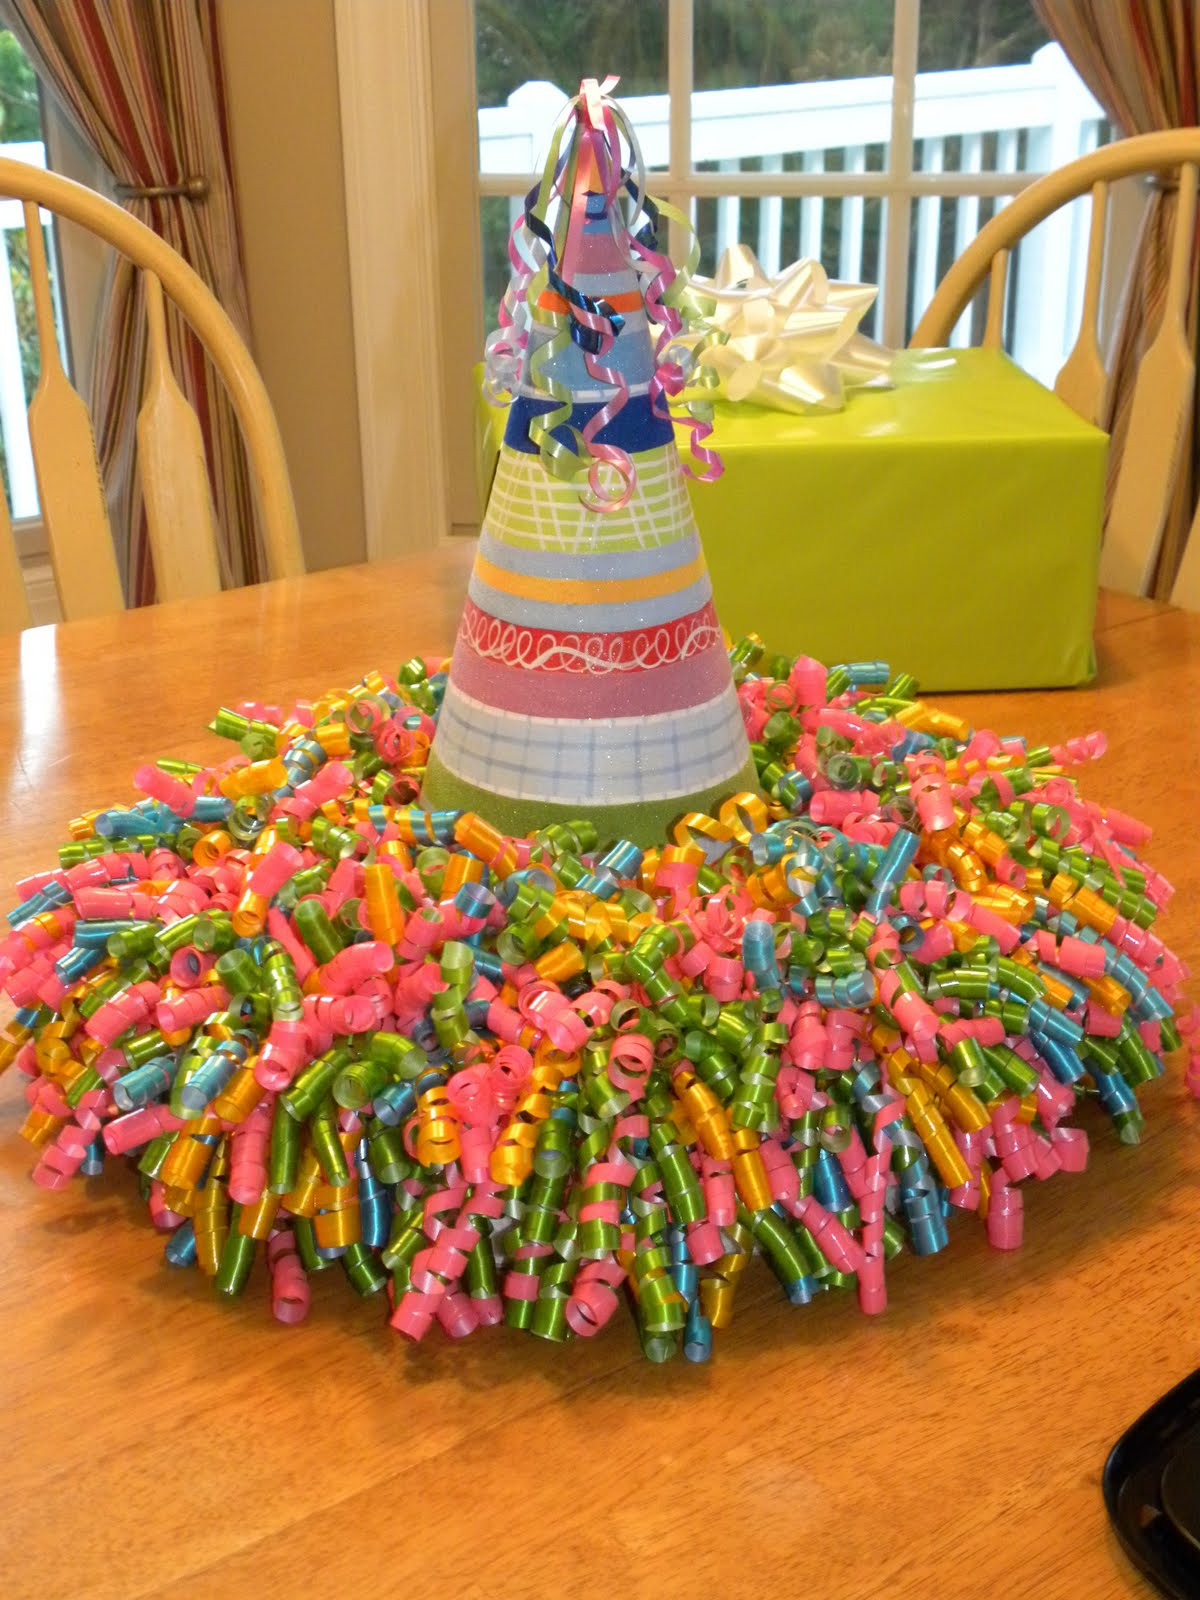 Adult birthday table decorations - Adult Party Table Decoration Ideas Fun Centerpiece Idea